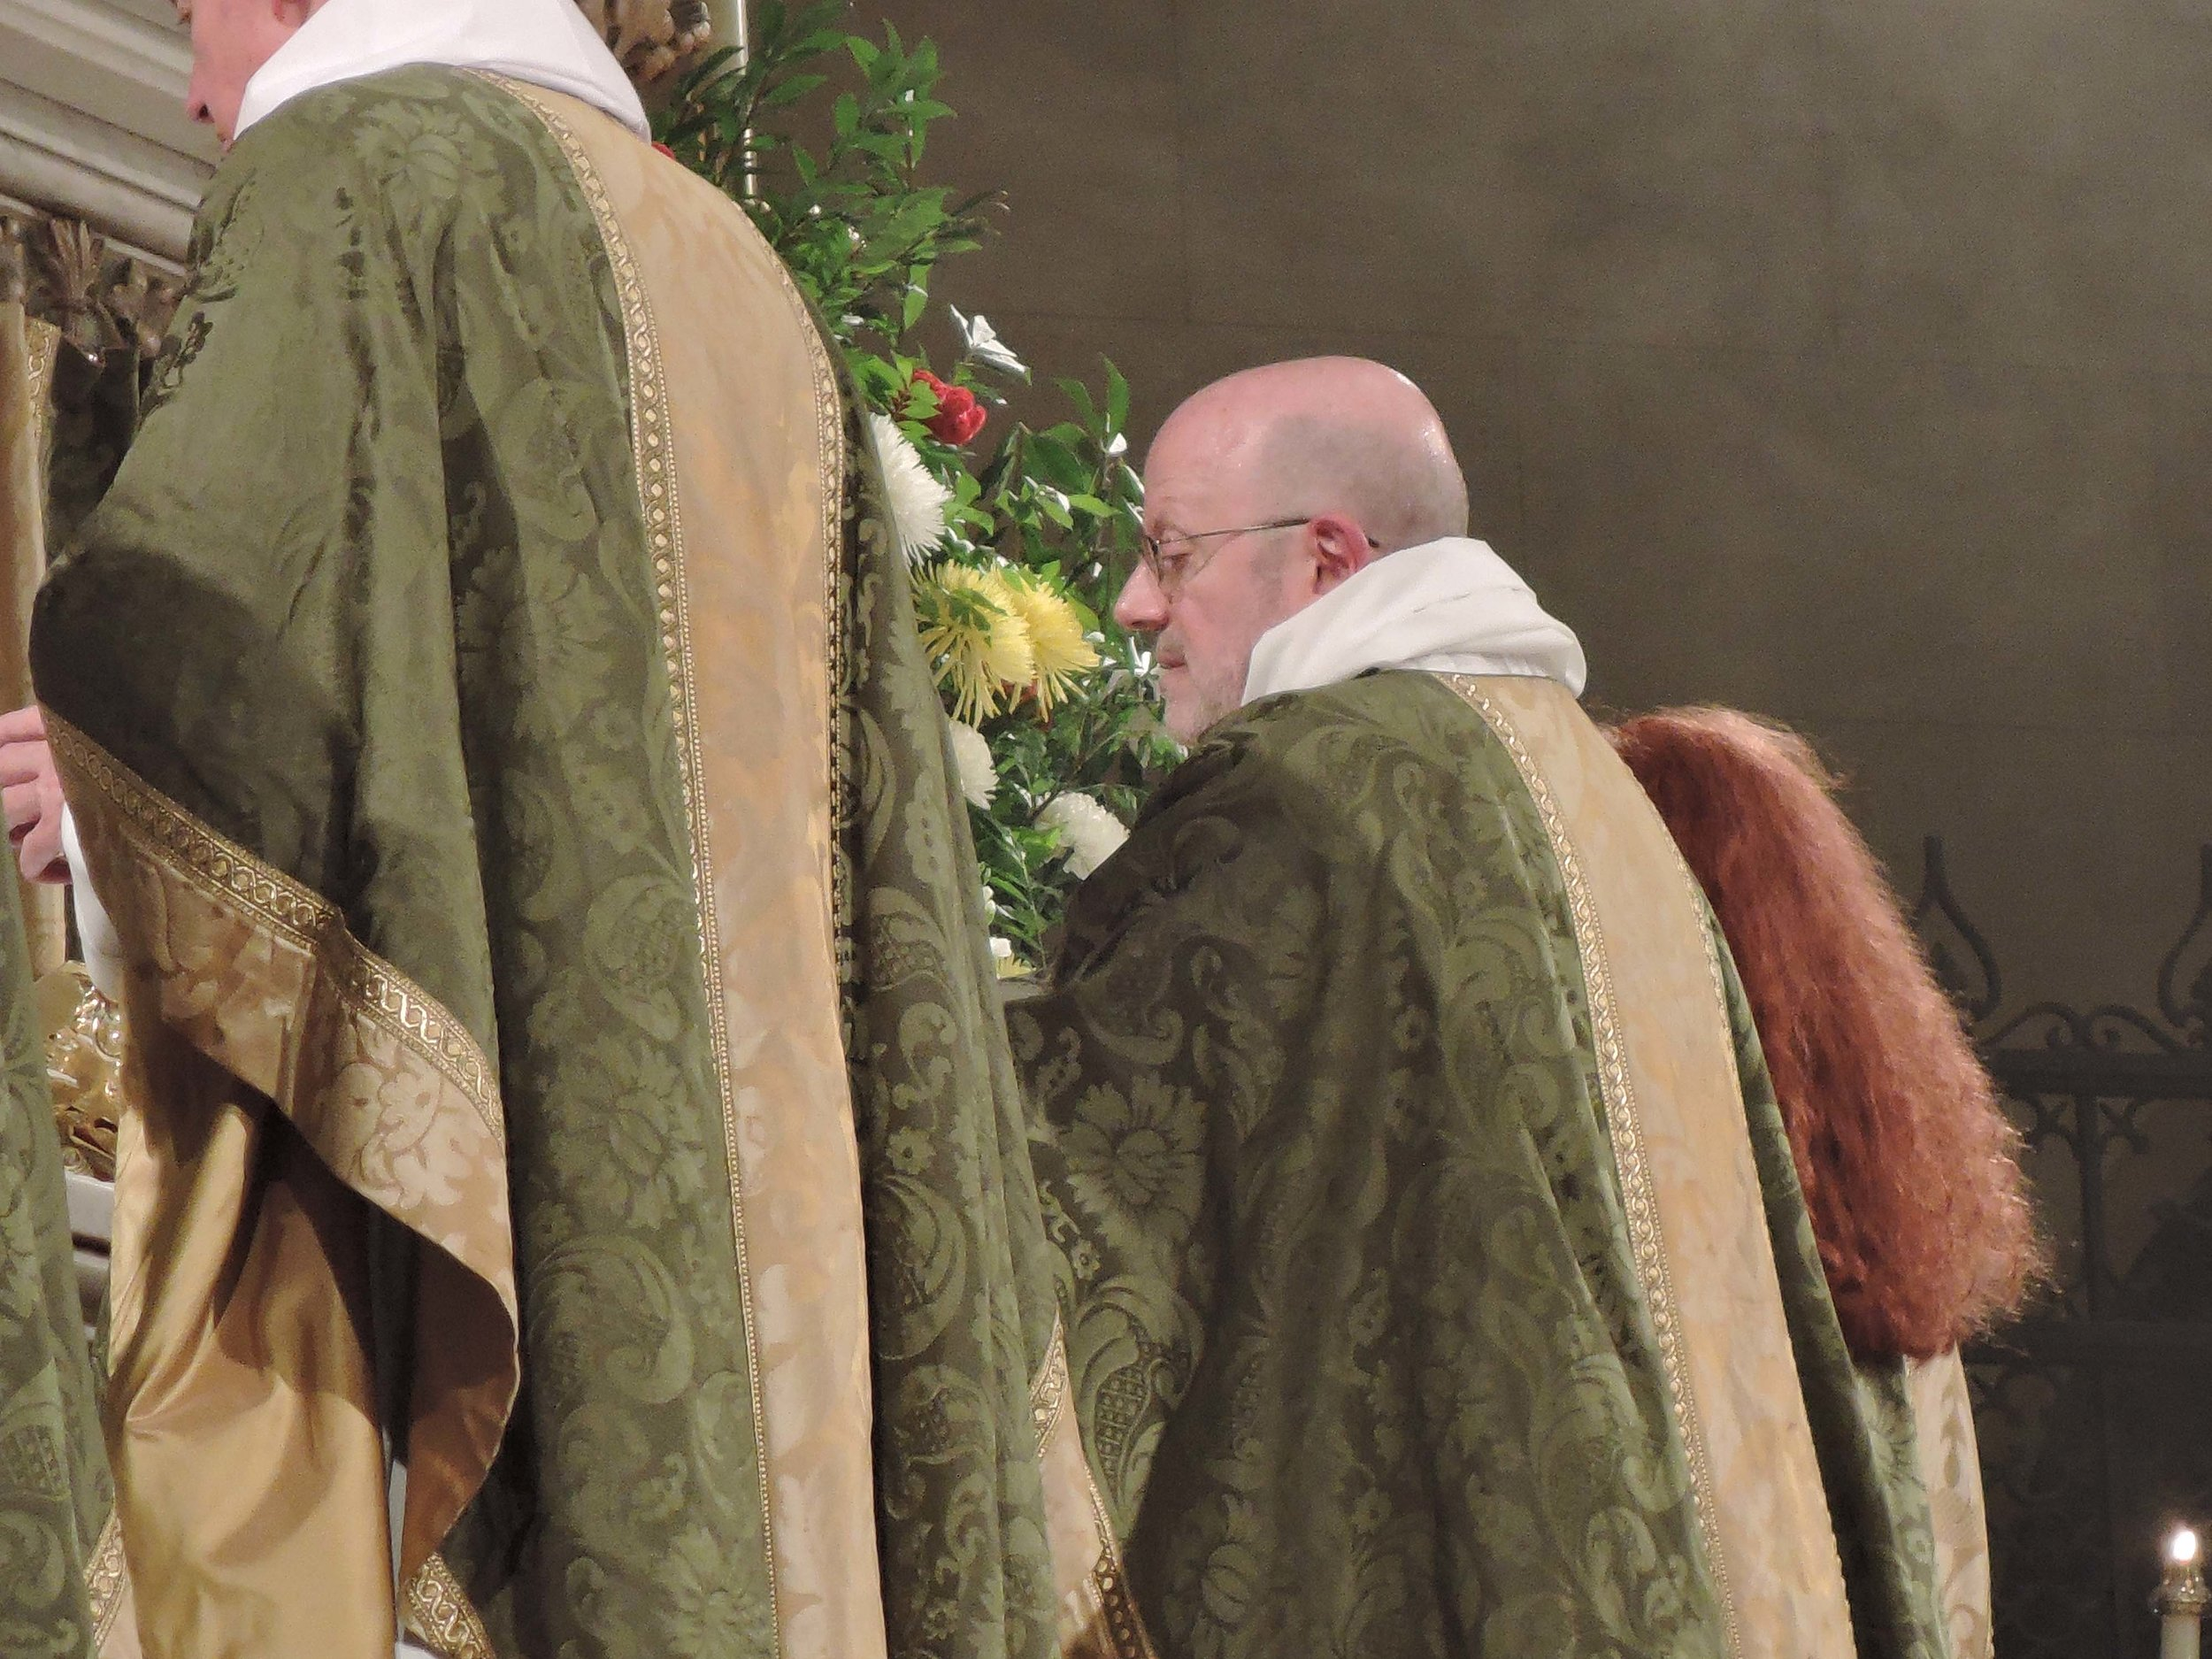 Father Jay Smith was celebrant and preacher on Sunday, June 25.